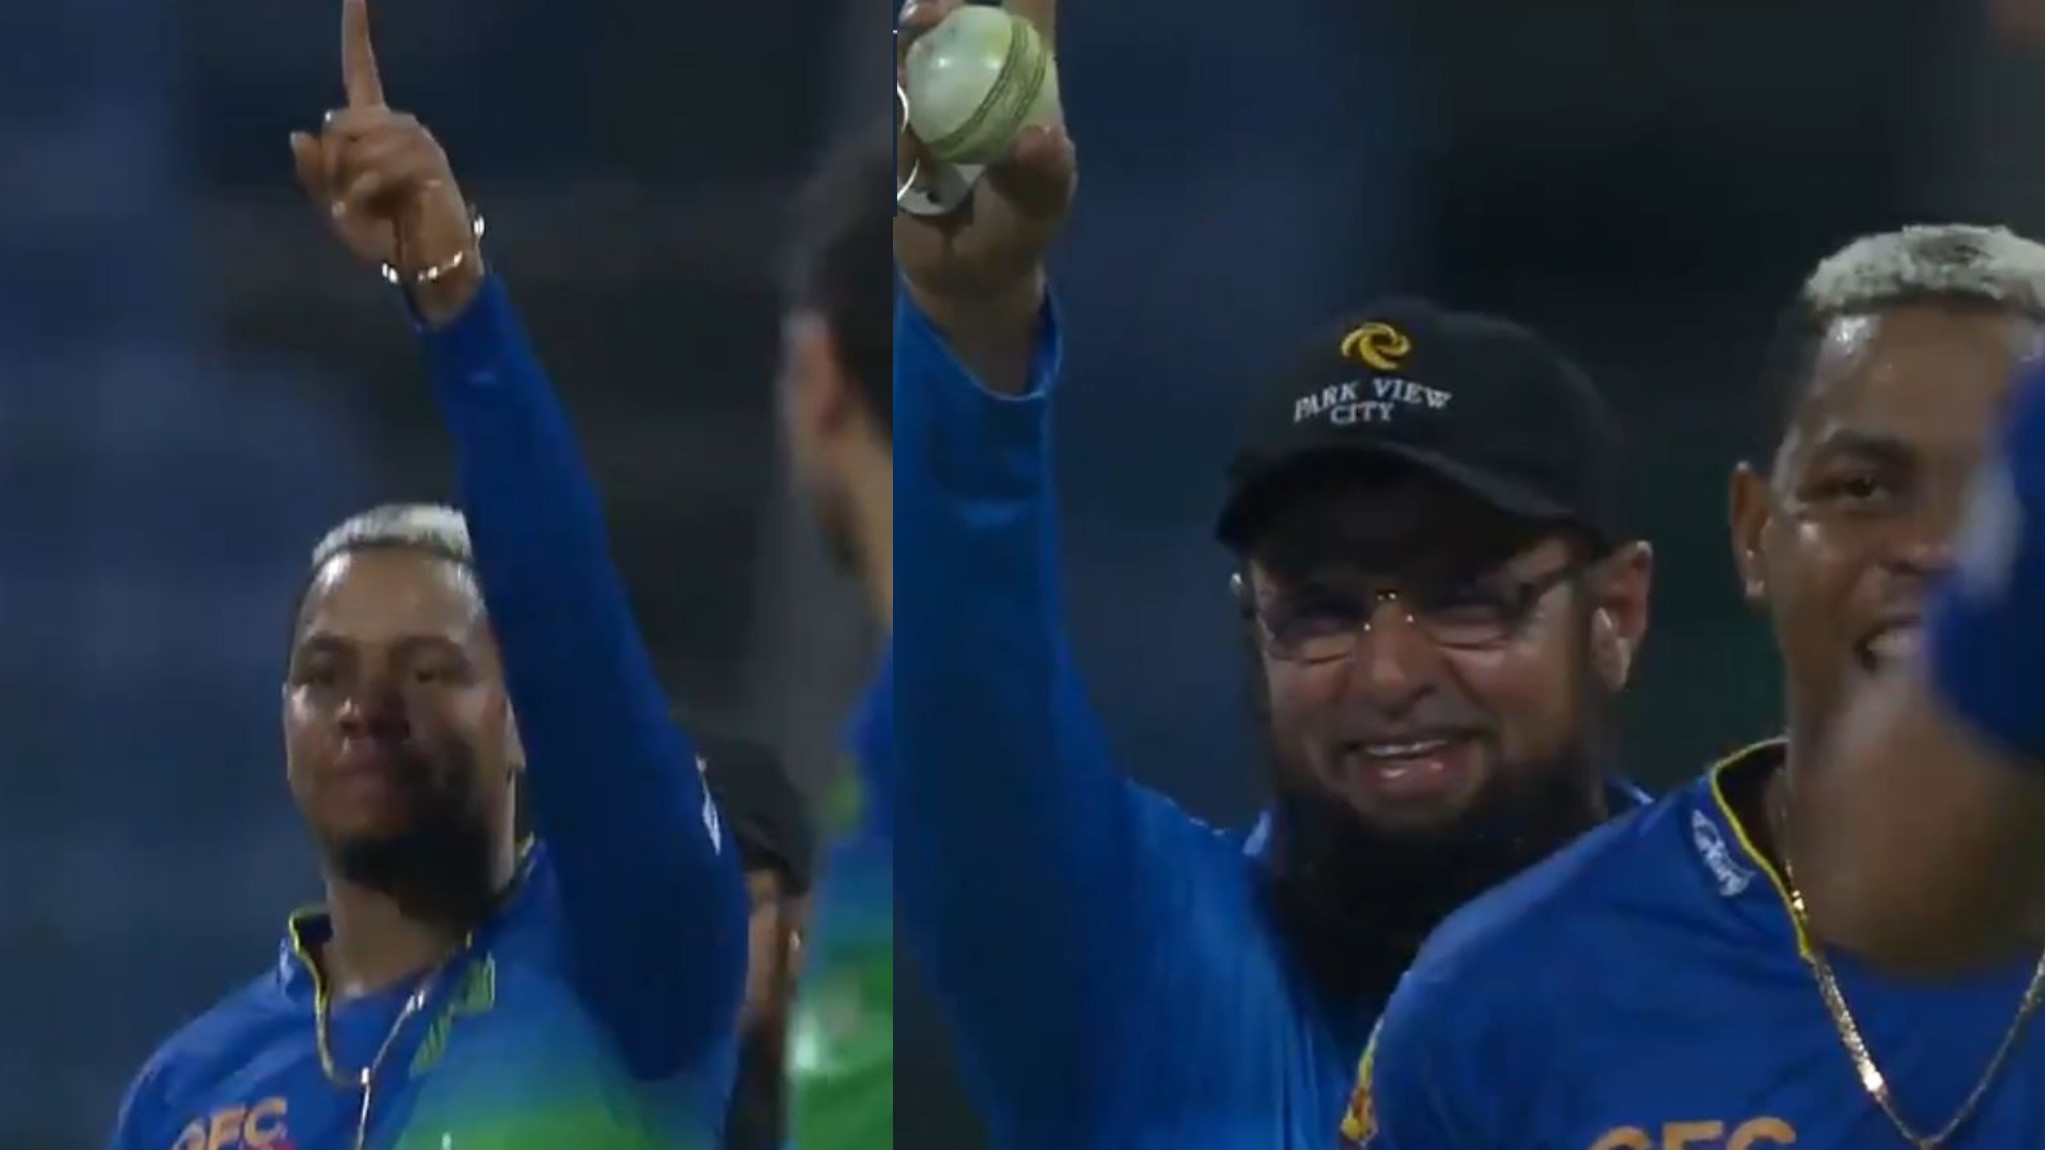 PSL 2021: WATCH - Shimron Hetmyer imitates umpire Aleem Dar and gives the batsman out before him